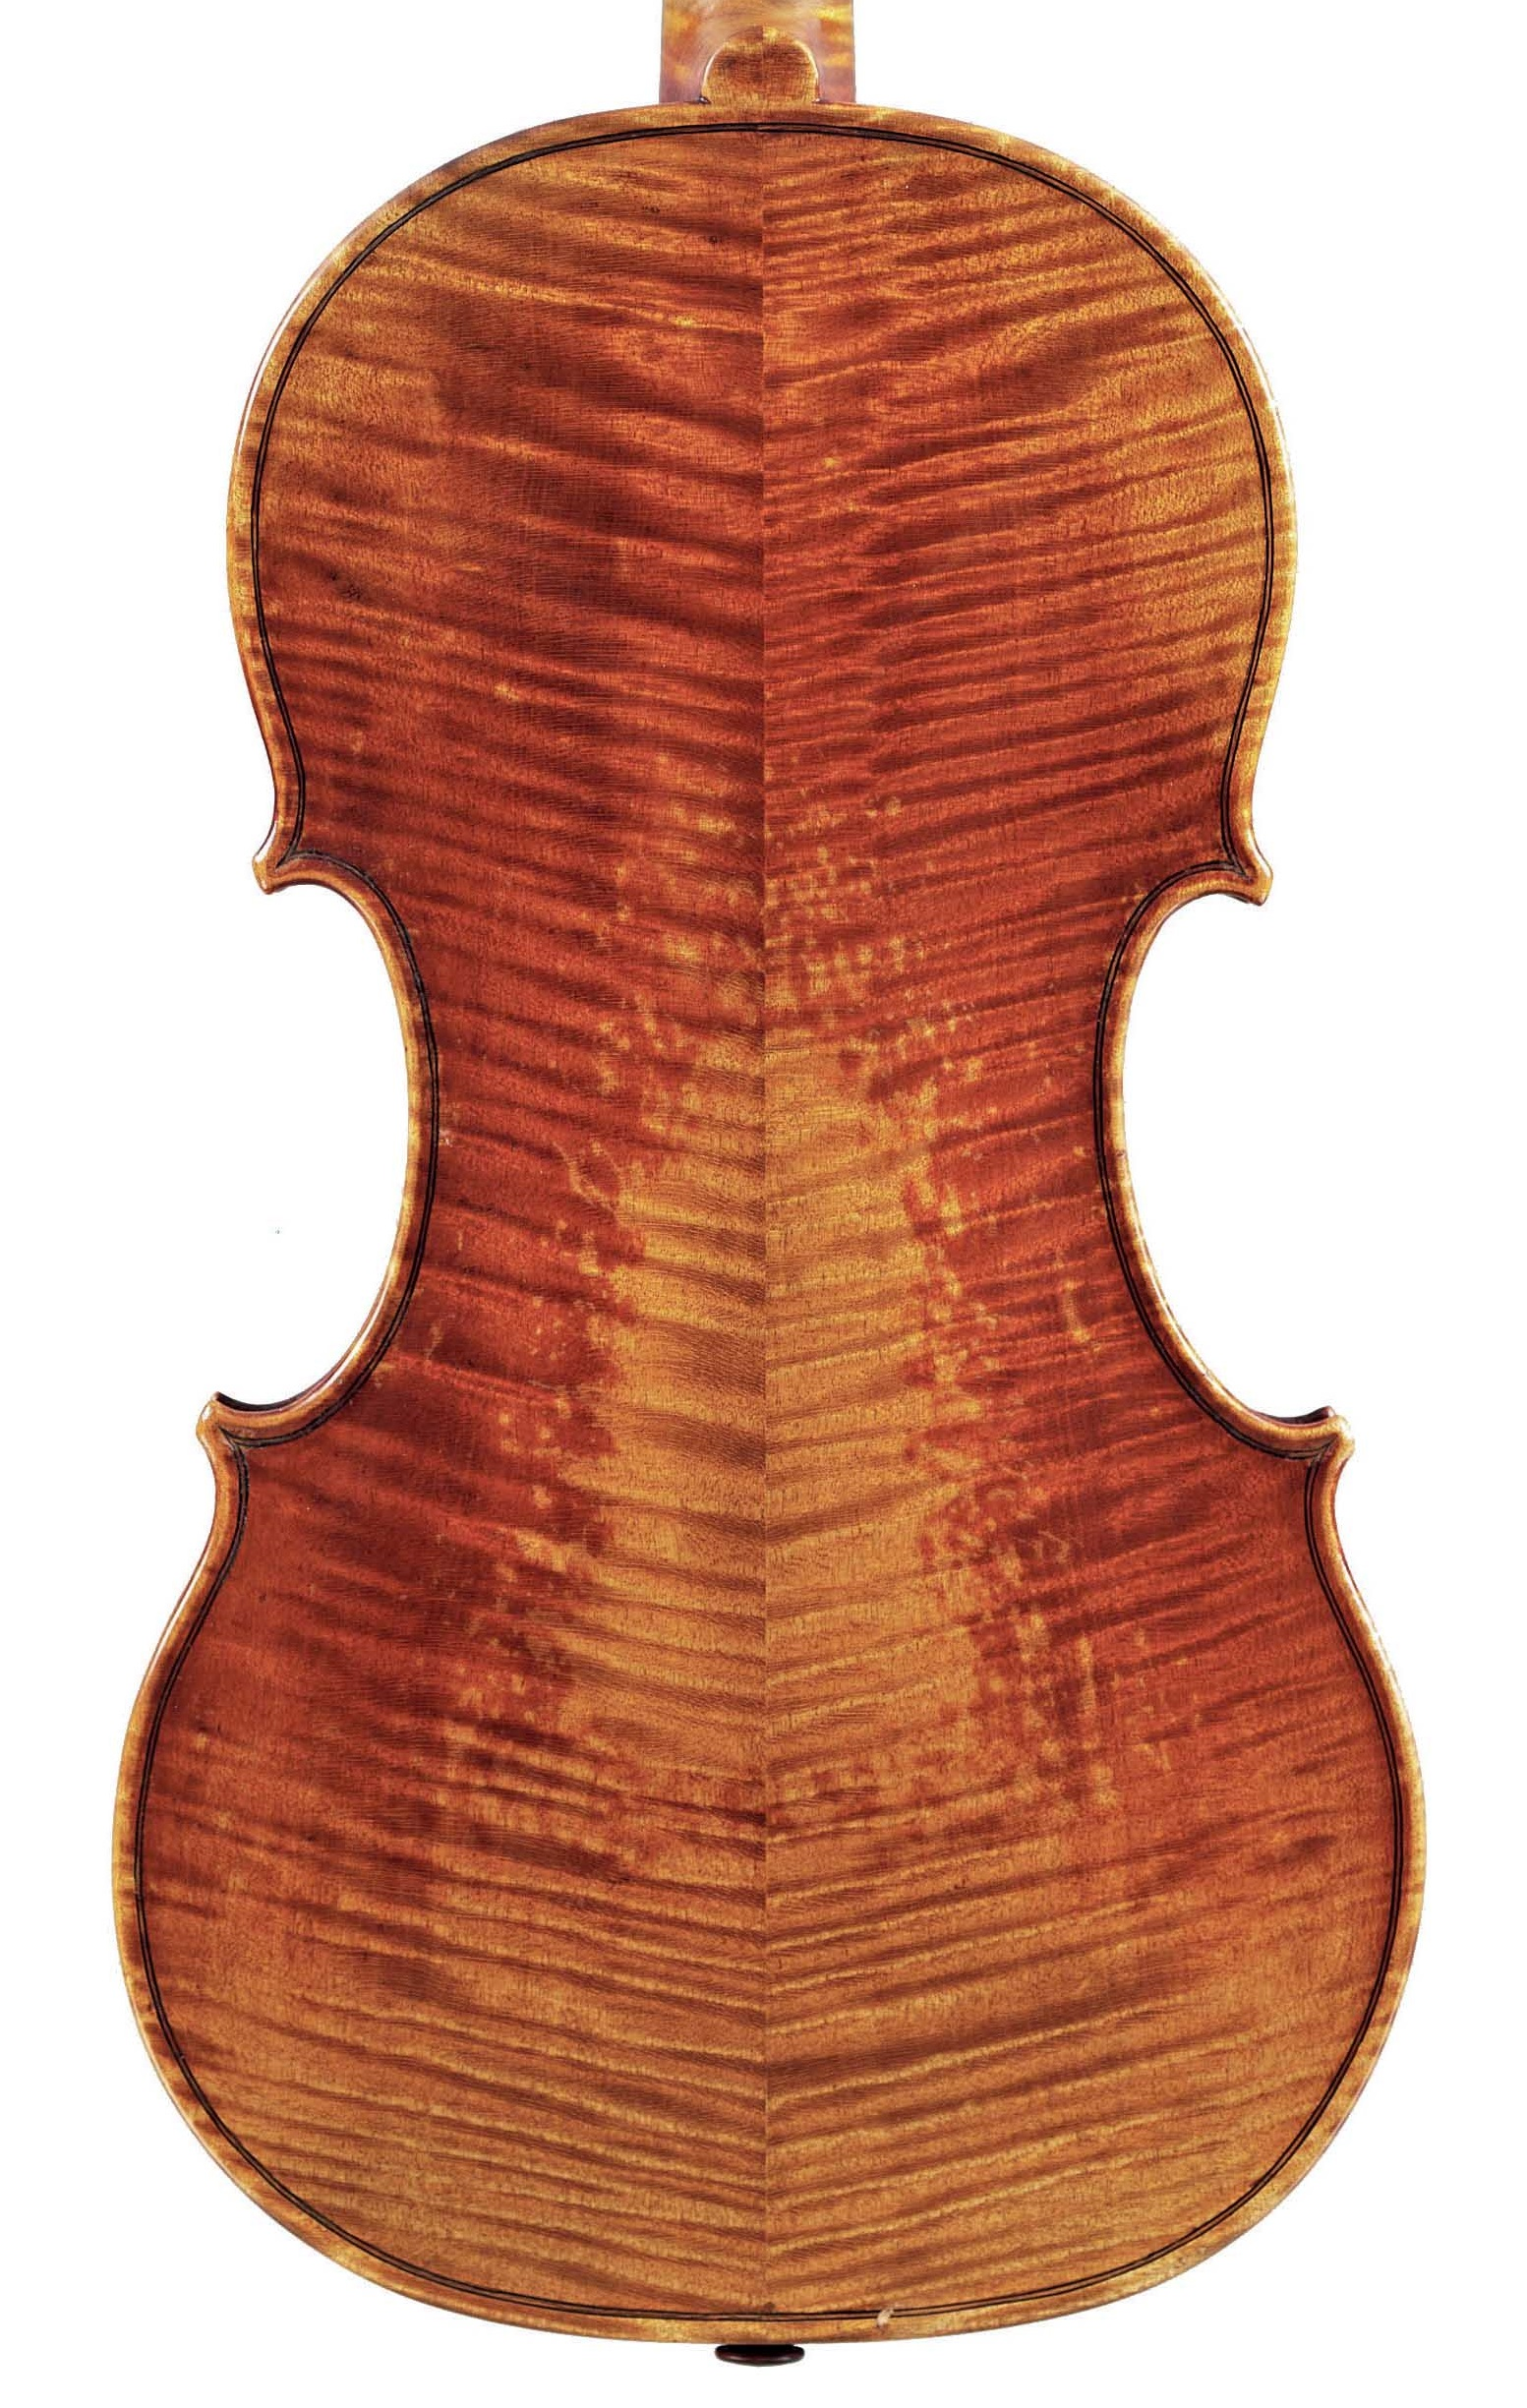 Back of violin by JB Vuillaume, ex-Sin, dated 1862, exhibited by Ingles & Hayday at Sotheby's in 2012